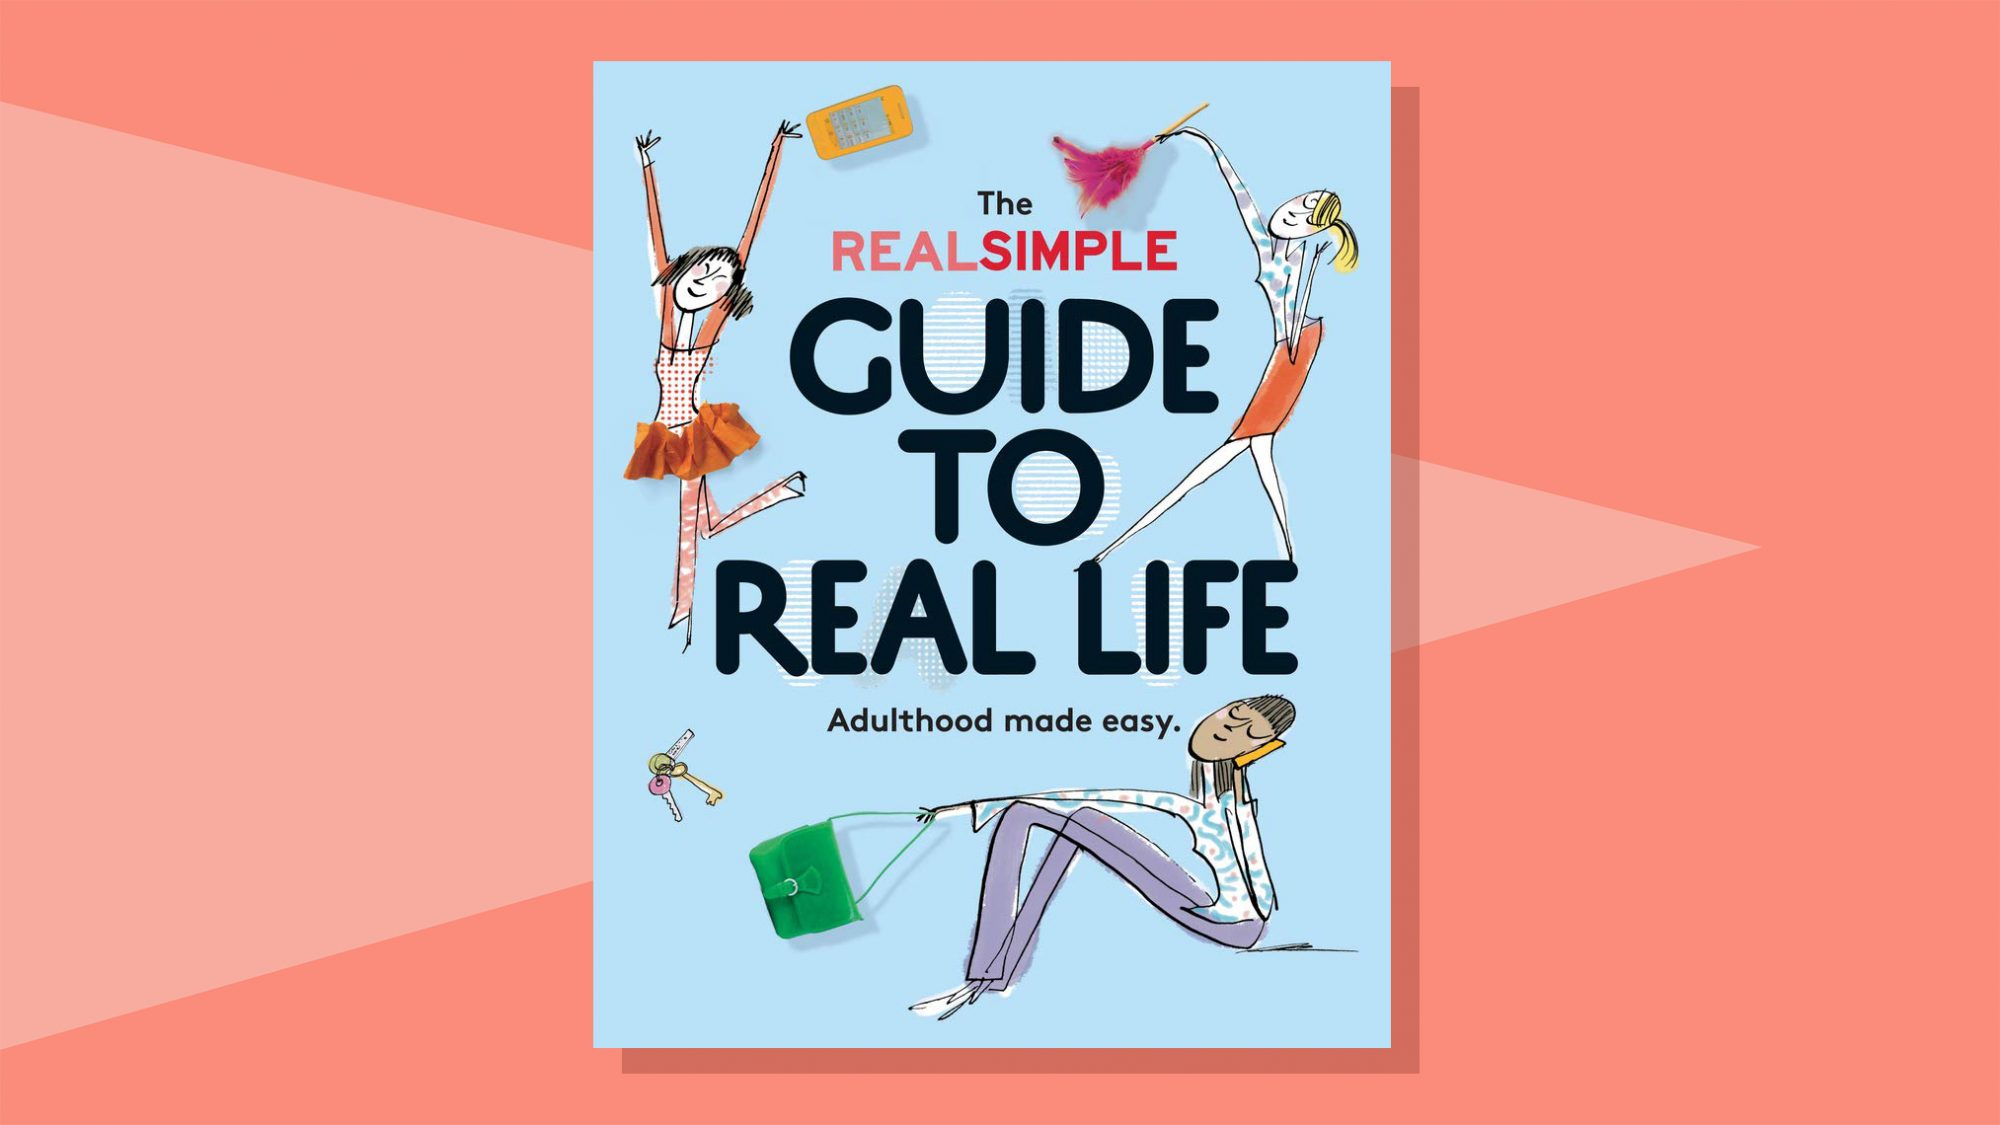 High school graduation gift ideas - Real Simple guide to real life book